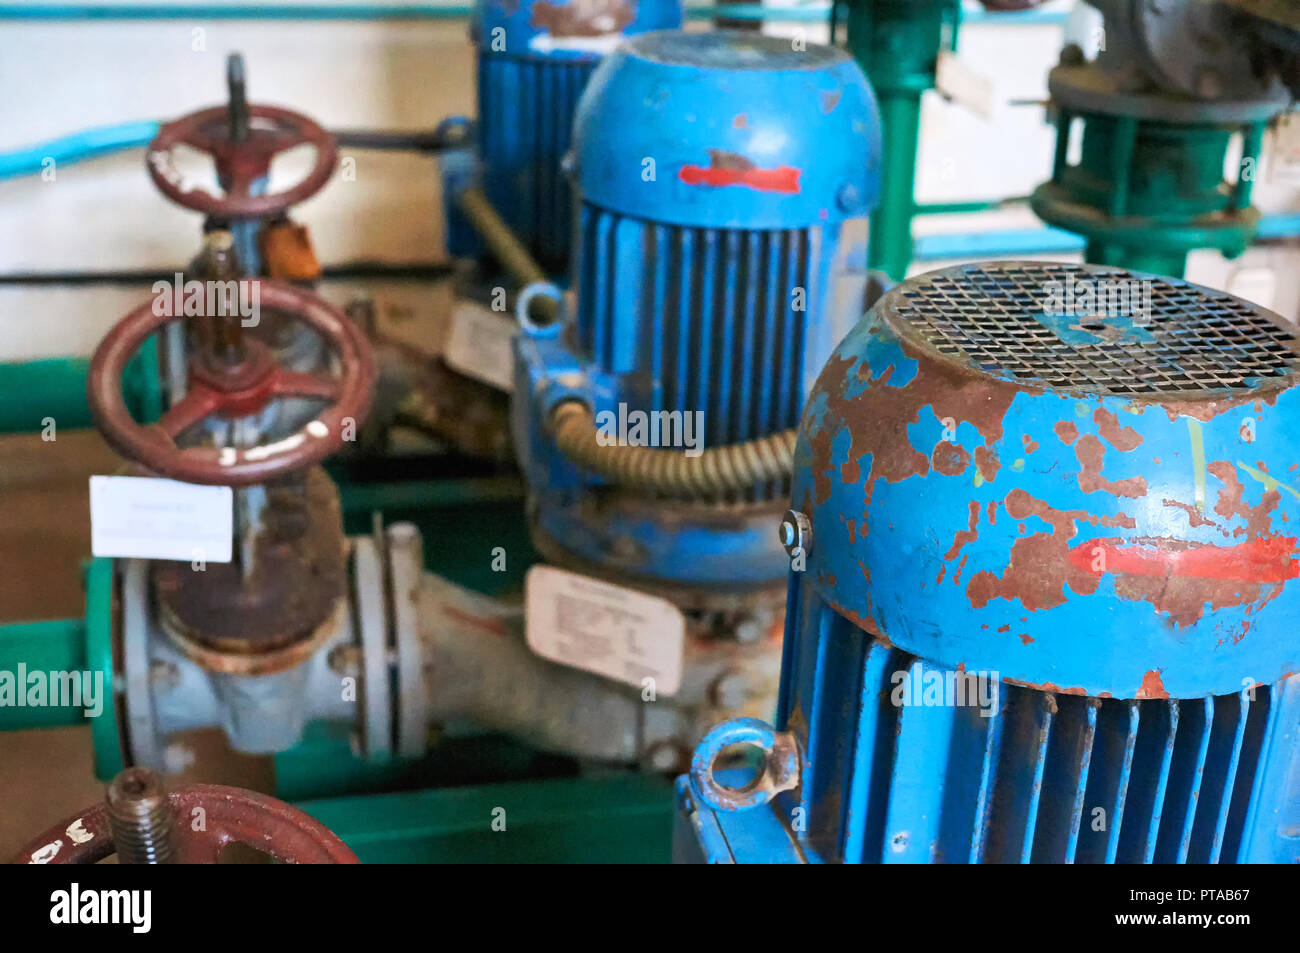 Old blue electric motor with pump, gate valve on the pipeline. Industrial background. - Stock Image